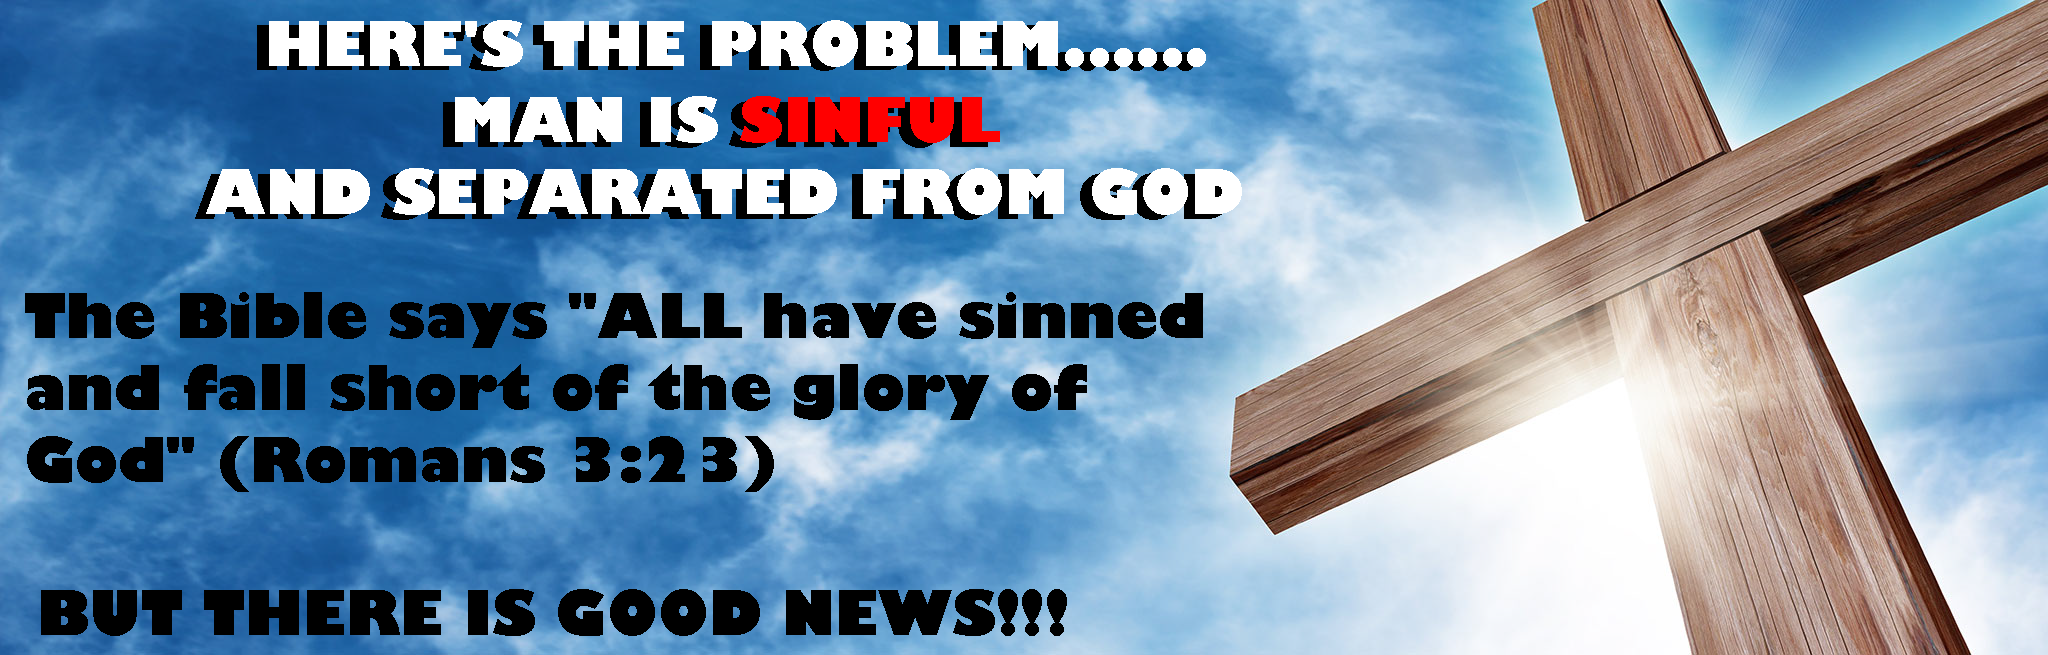 here's the problem: man is sinful and separated from God